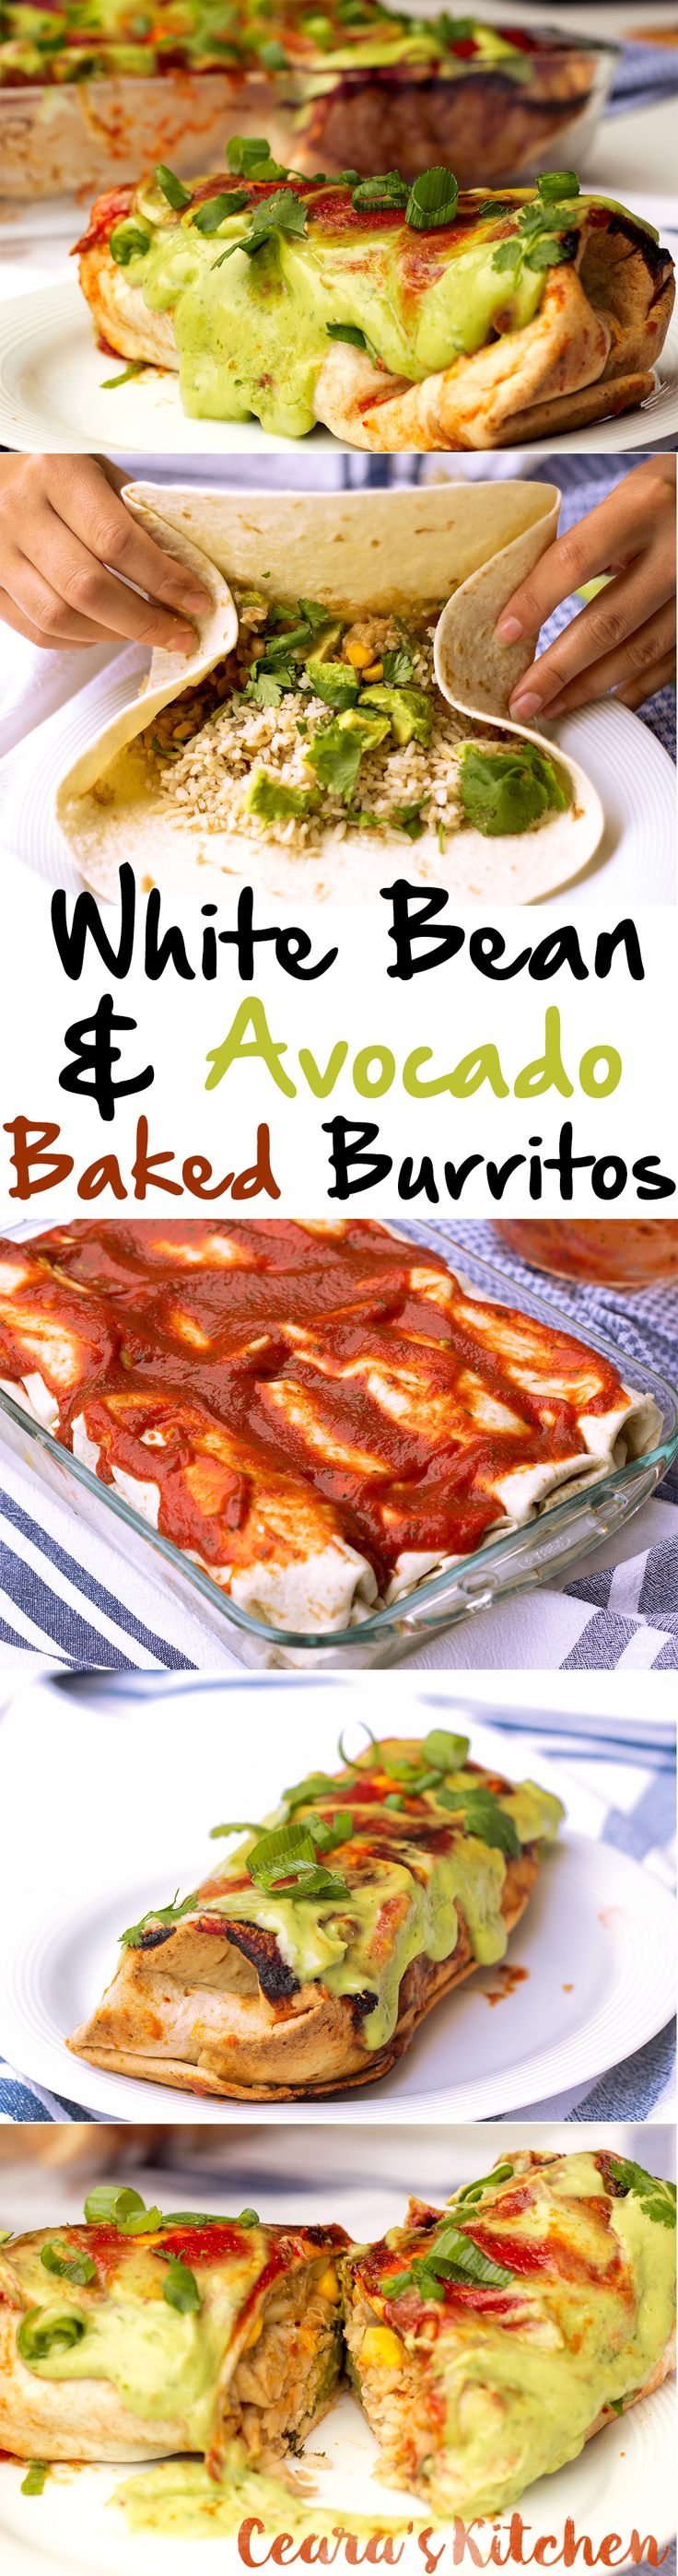 These burritos are delicious! You won't miss the meat in this vegan dish!